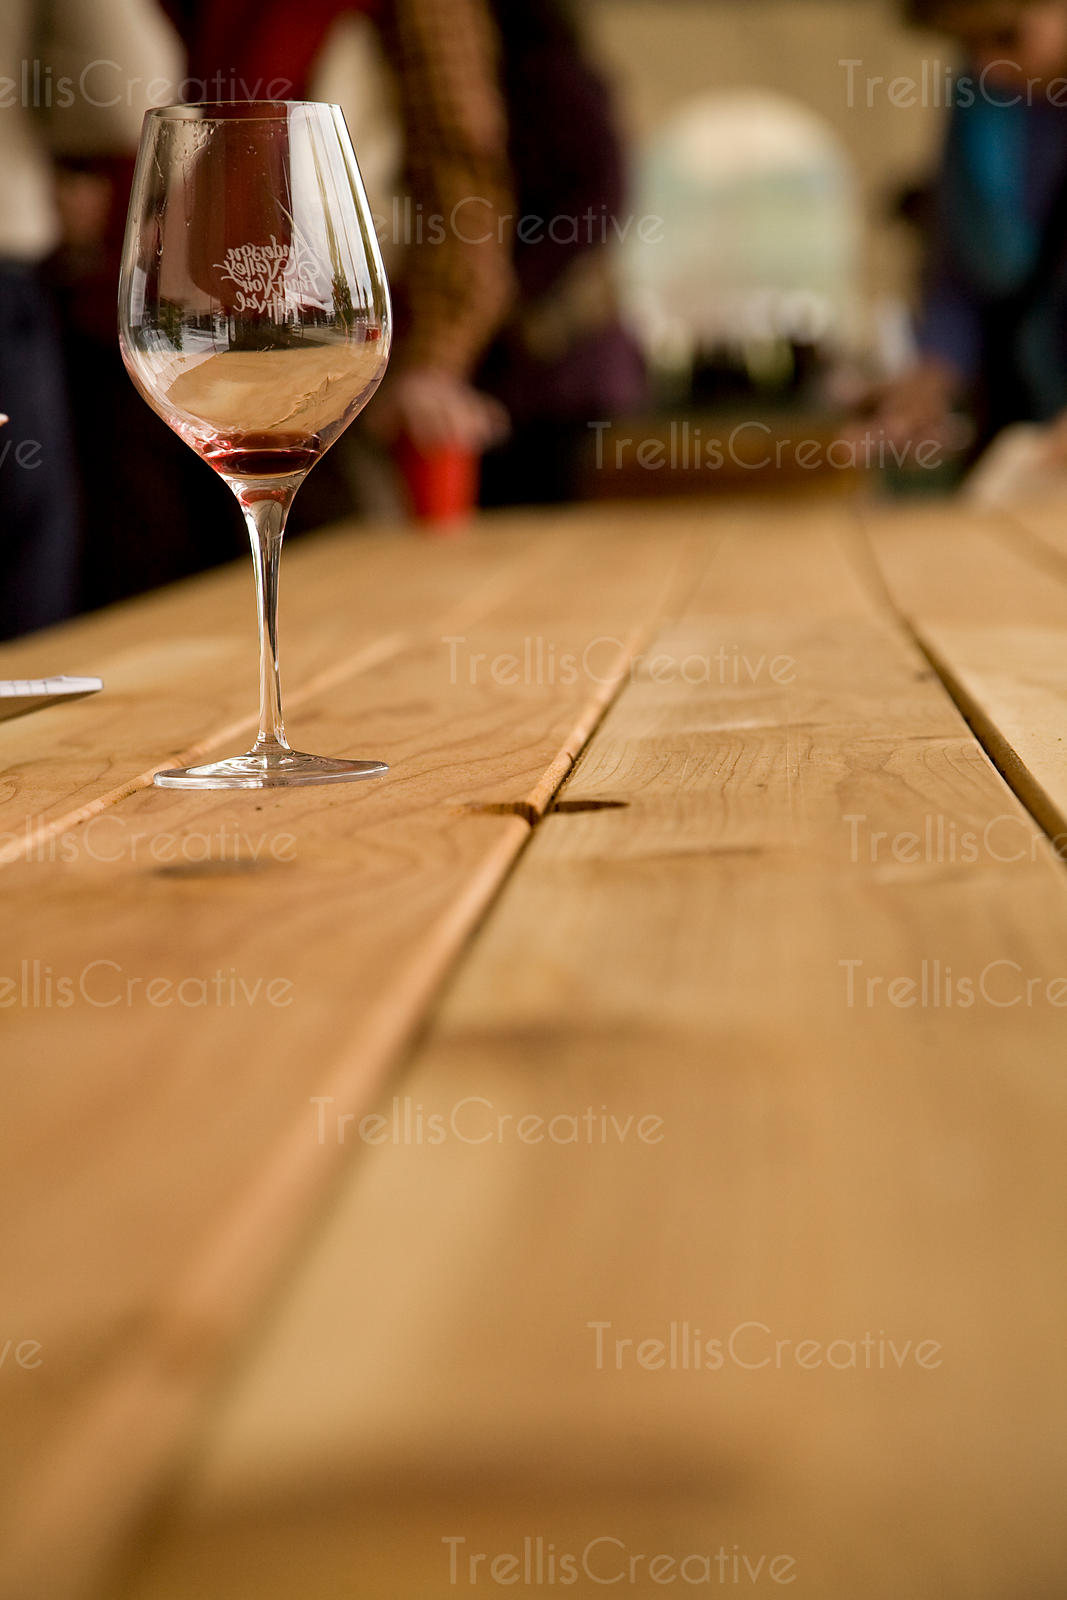 An empty wine glass sits on a wooden picnic table